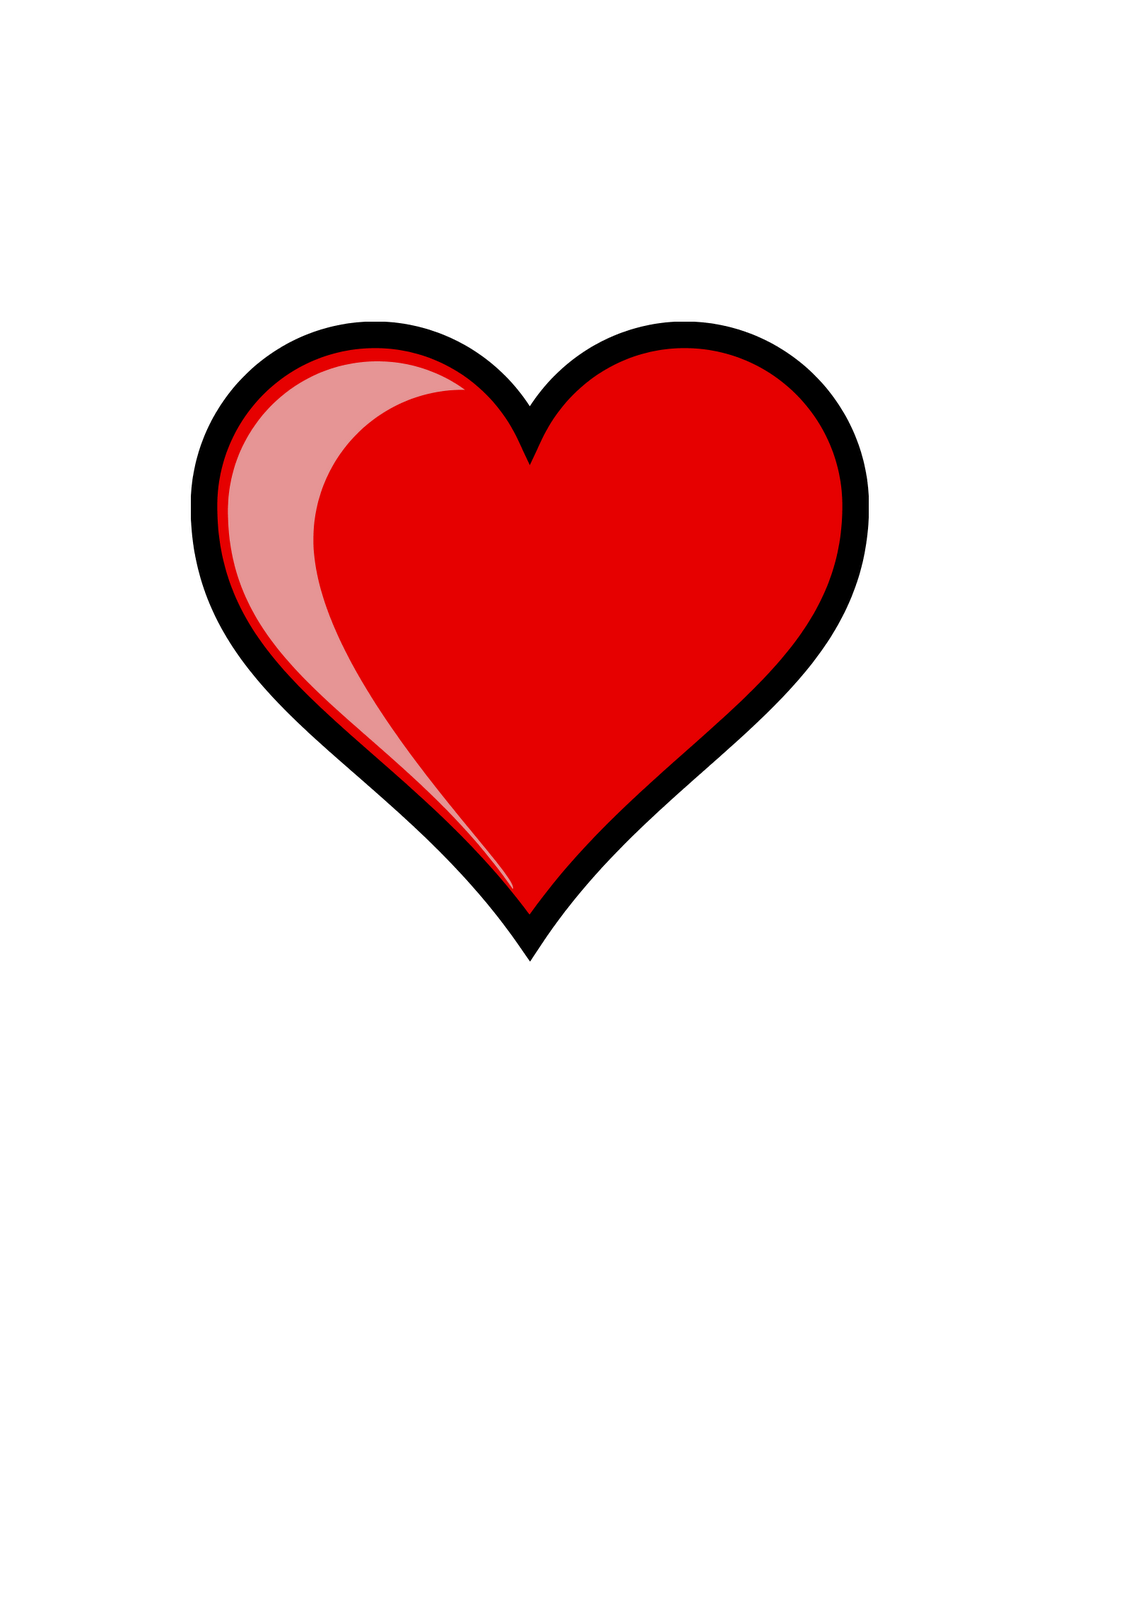 Clipart For Valentines Day - ClipArt Best